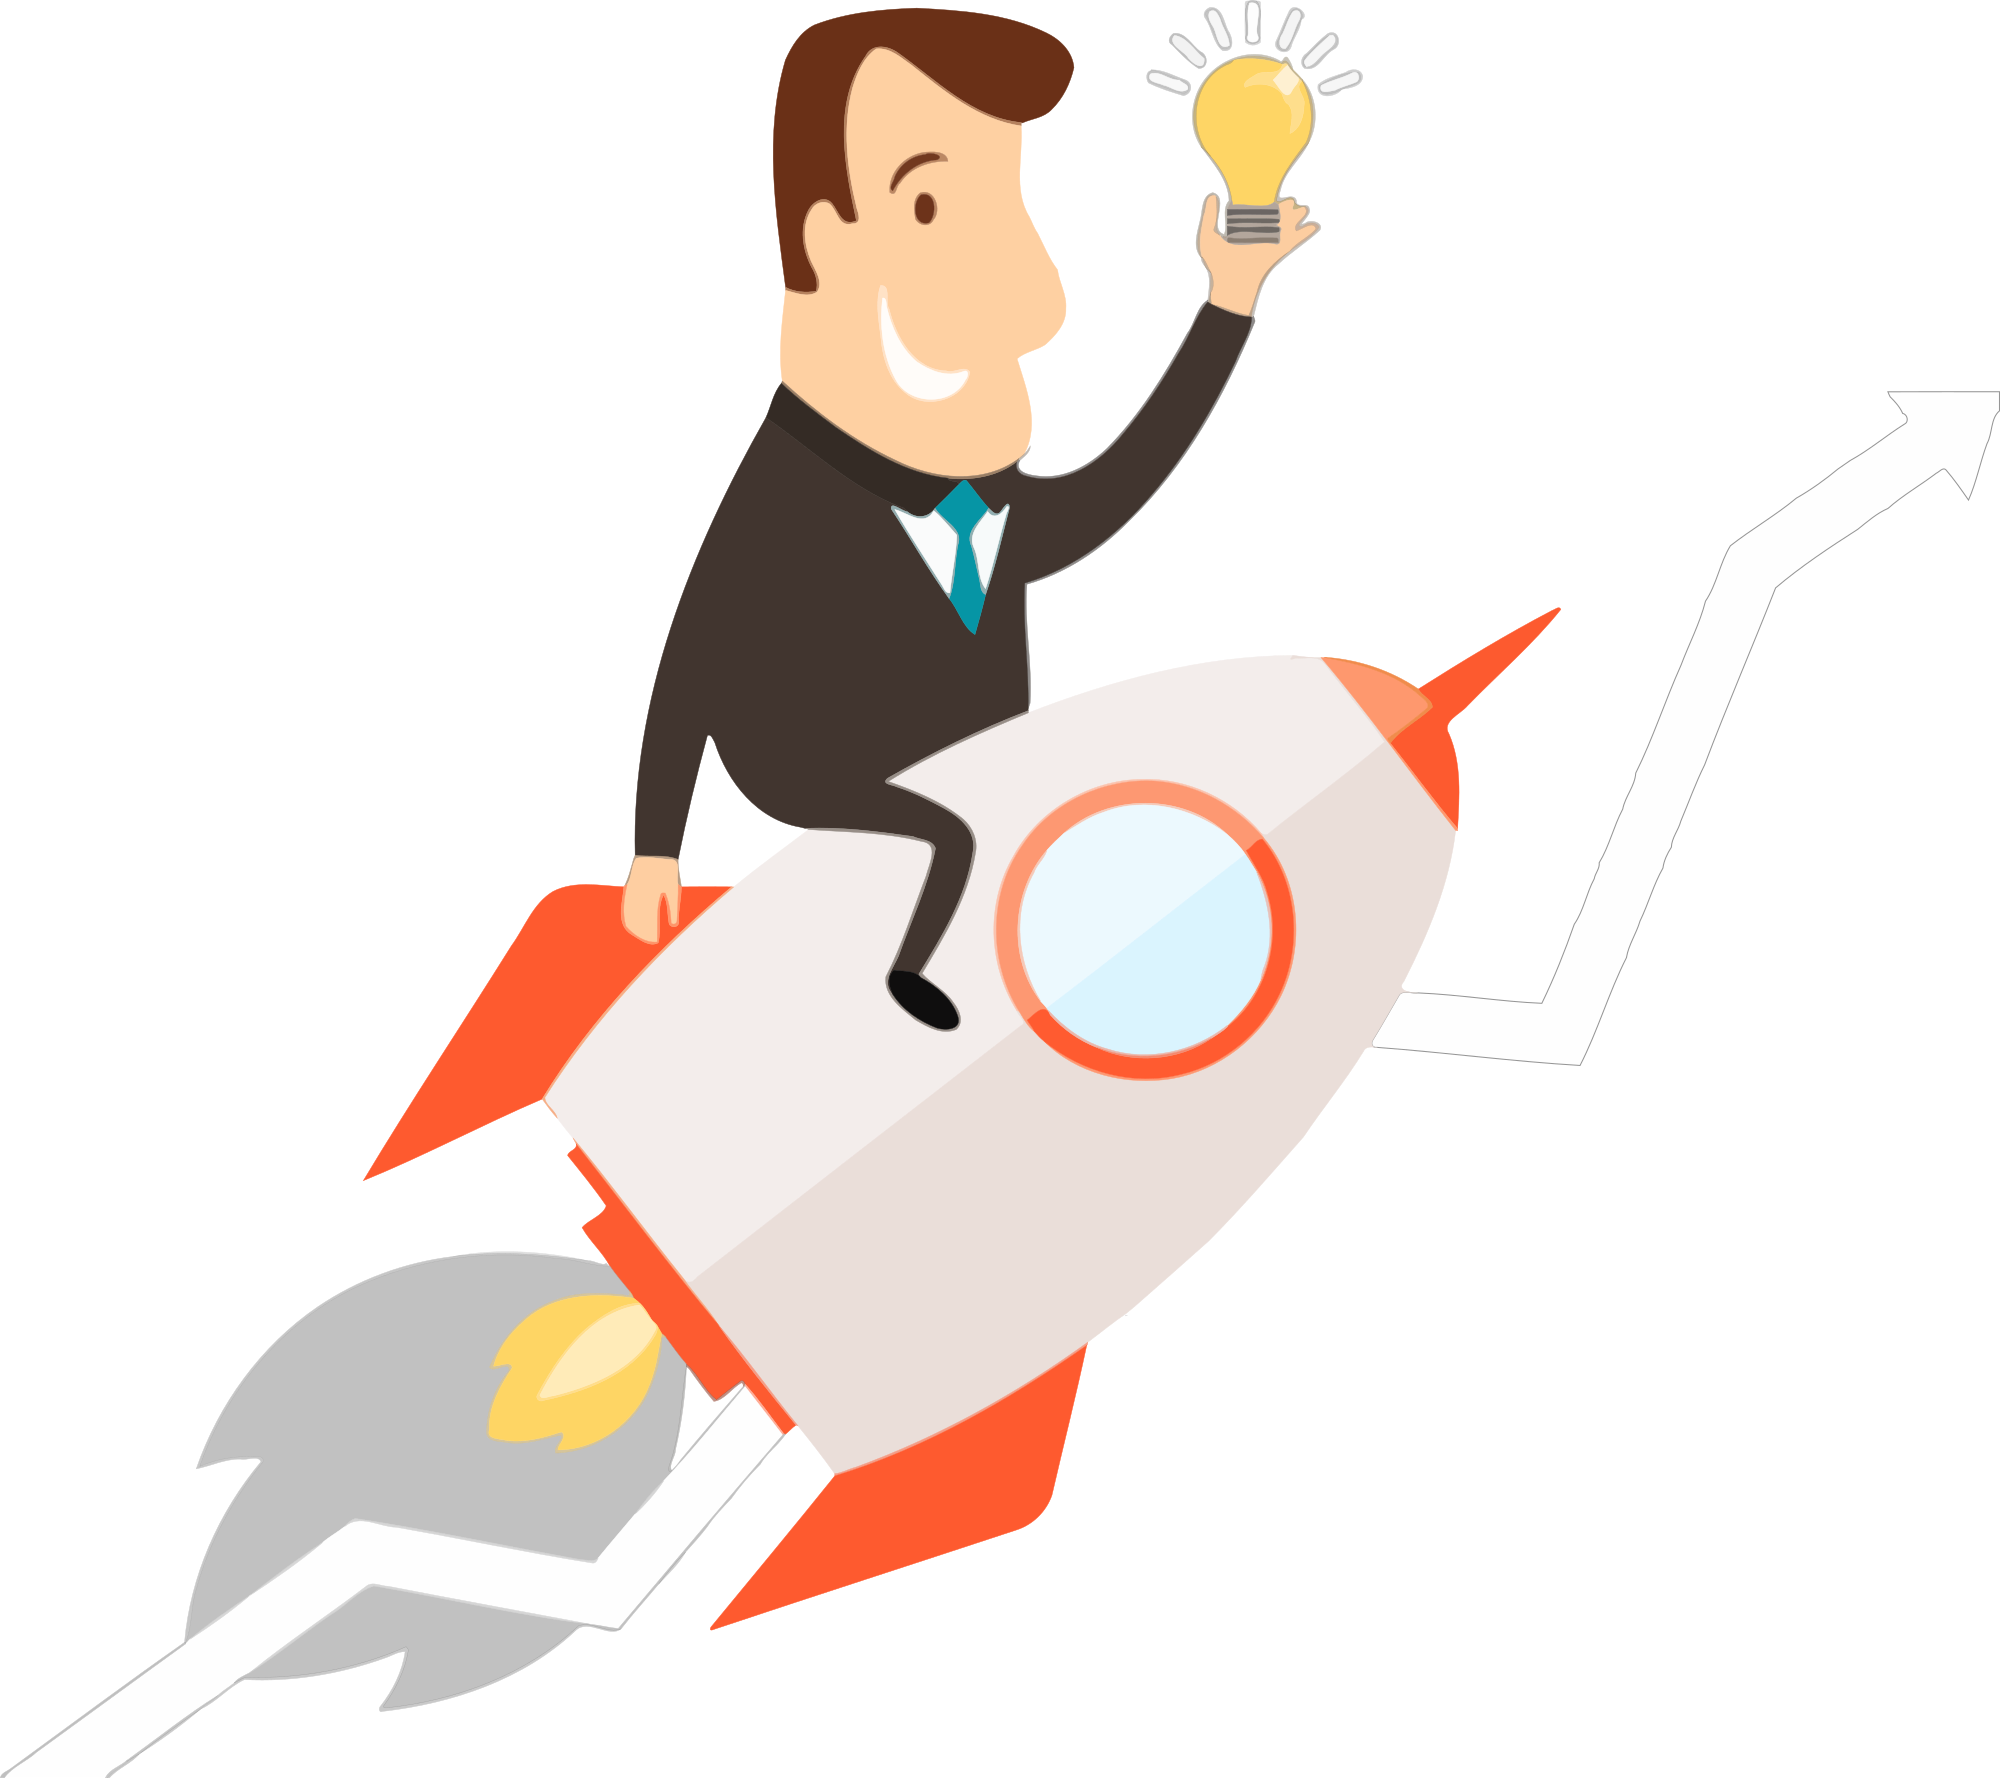 2000x1778 Space Rocket Clip Art Image Search Results Clipart 3